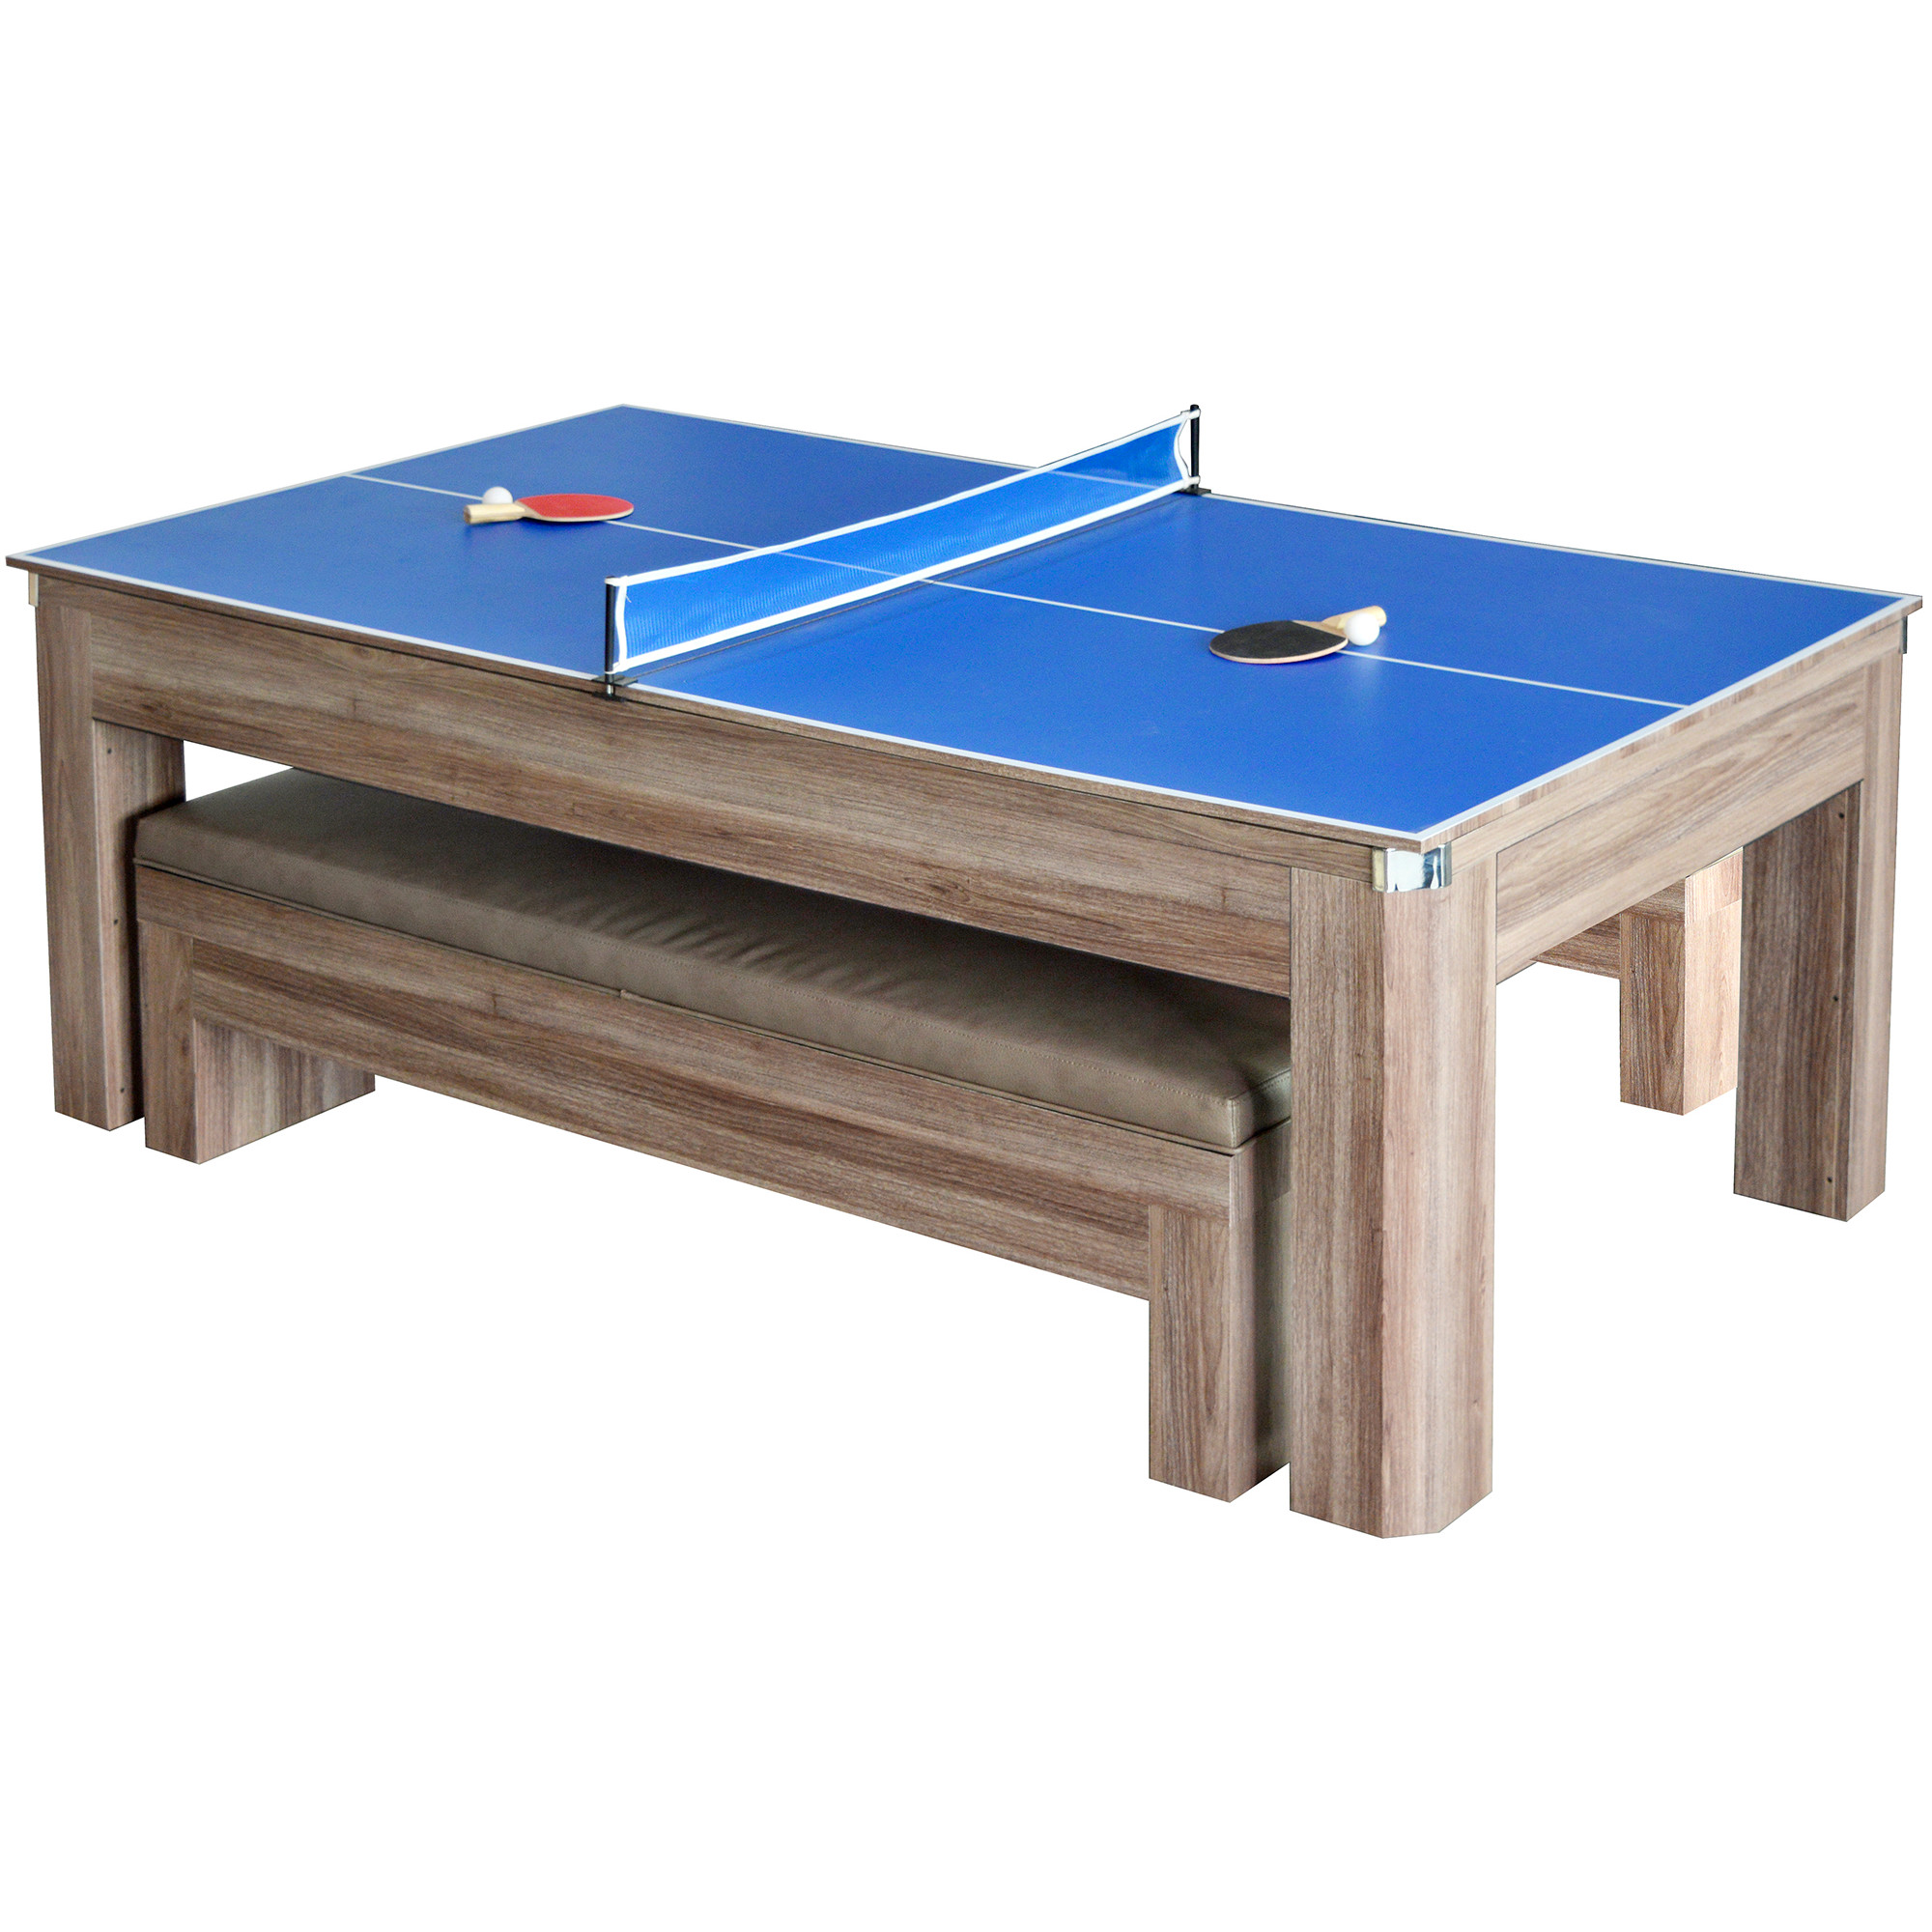 Mizerak Pool Table | 6 Foot Pool Tables Sale | Pool Tables Walmart